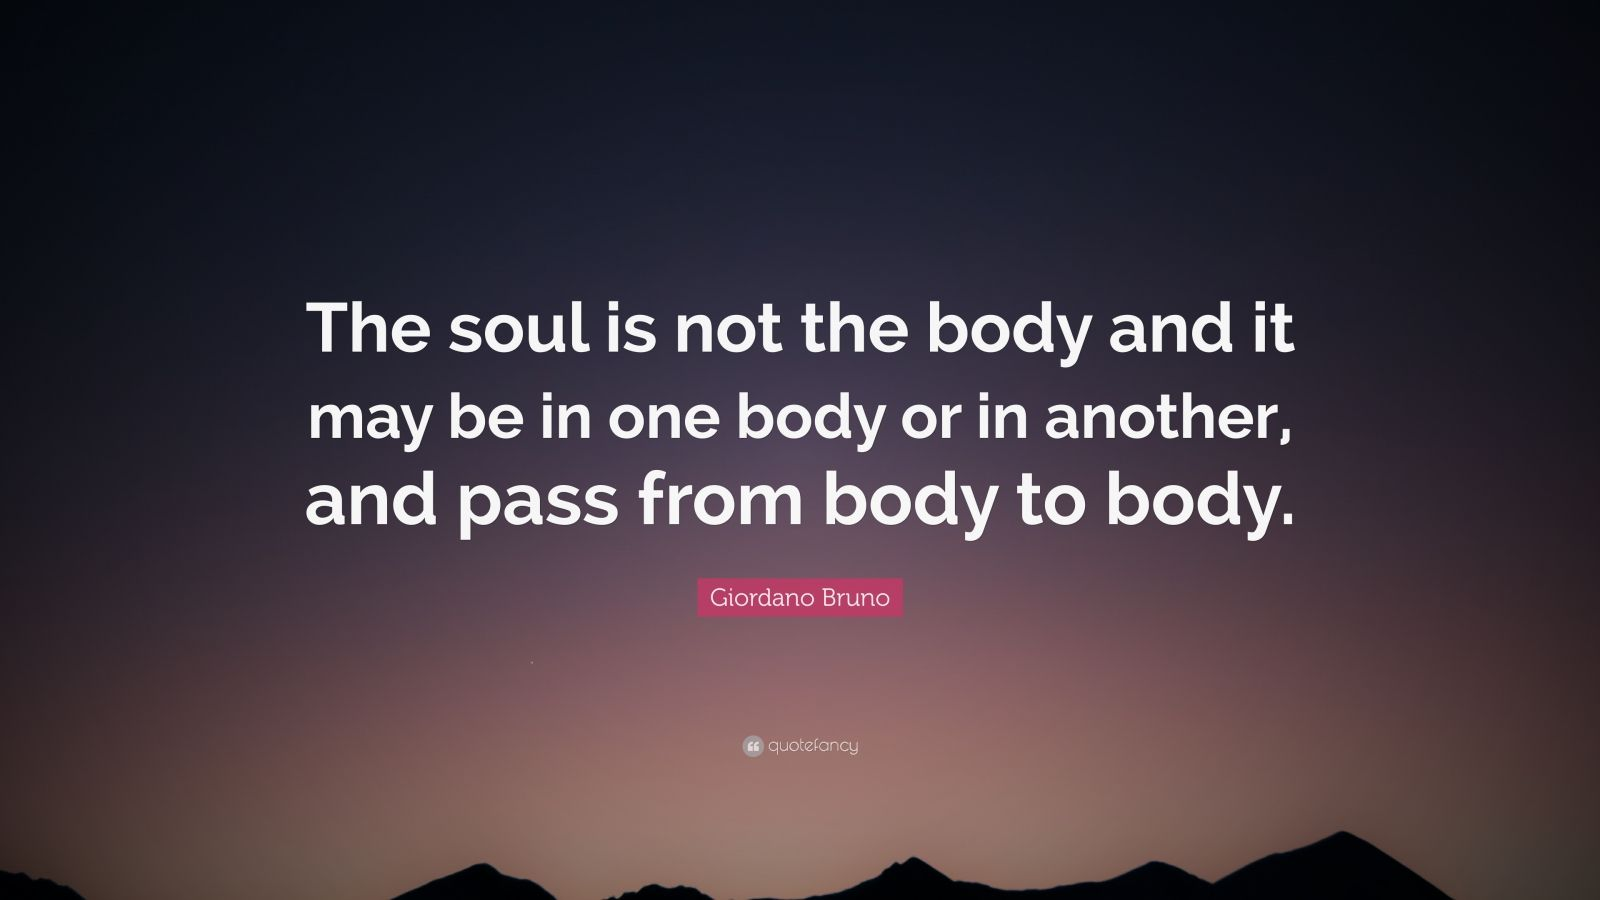 """Giordano Bruno Quote: """"The soul is not the body and it may be in one body or in another, and pass from body to body."""""""